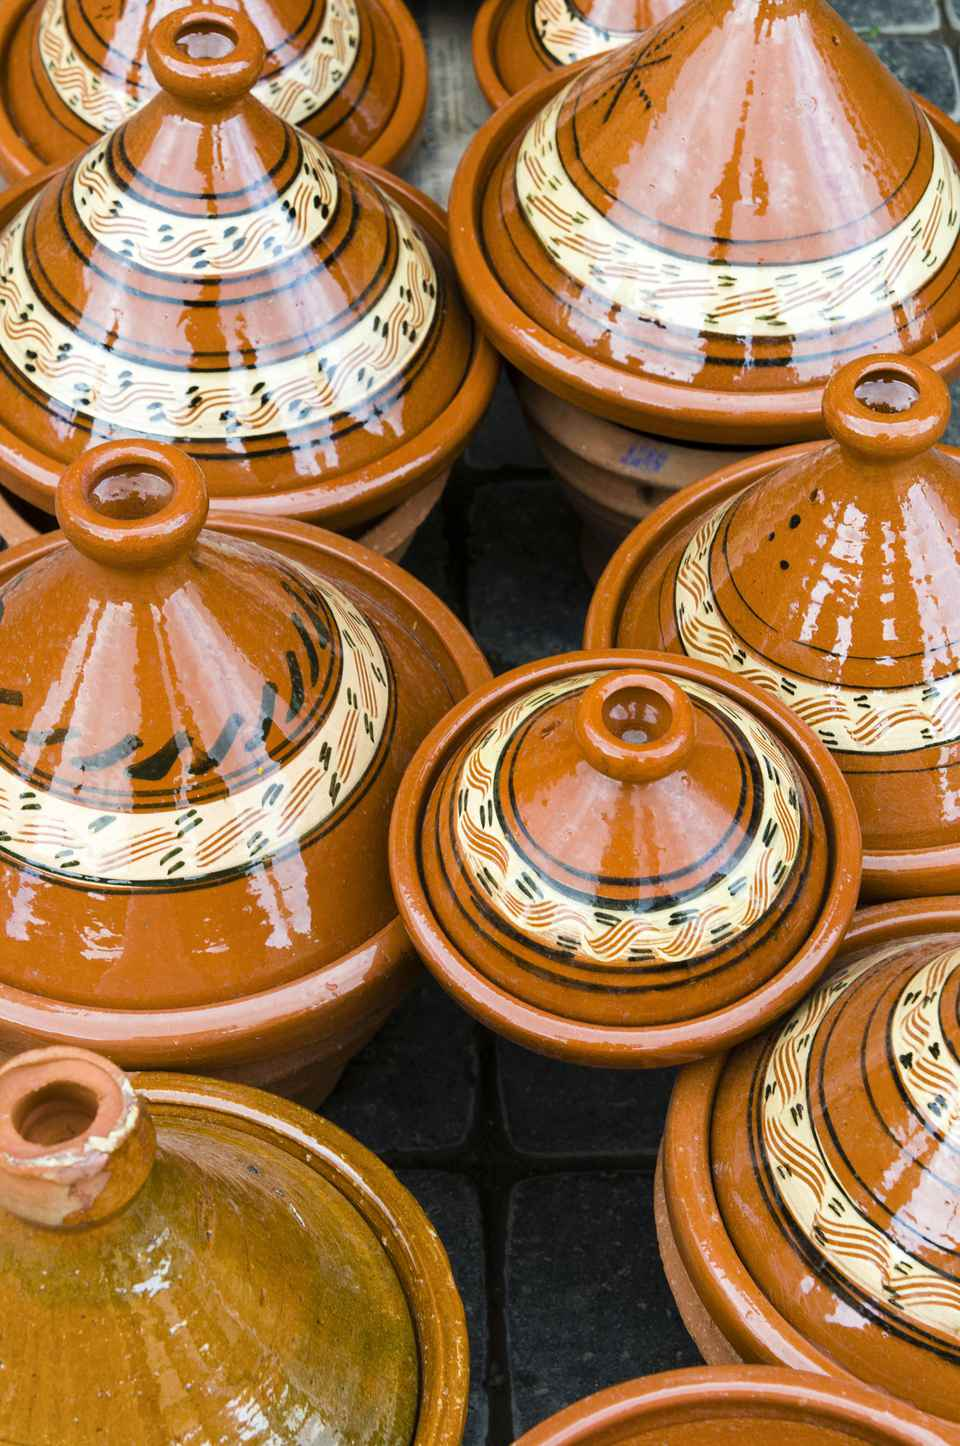 Pottery for Tajine for sale in souk, Marrakech, Morocco